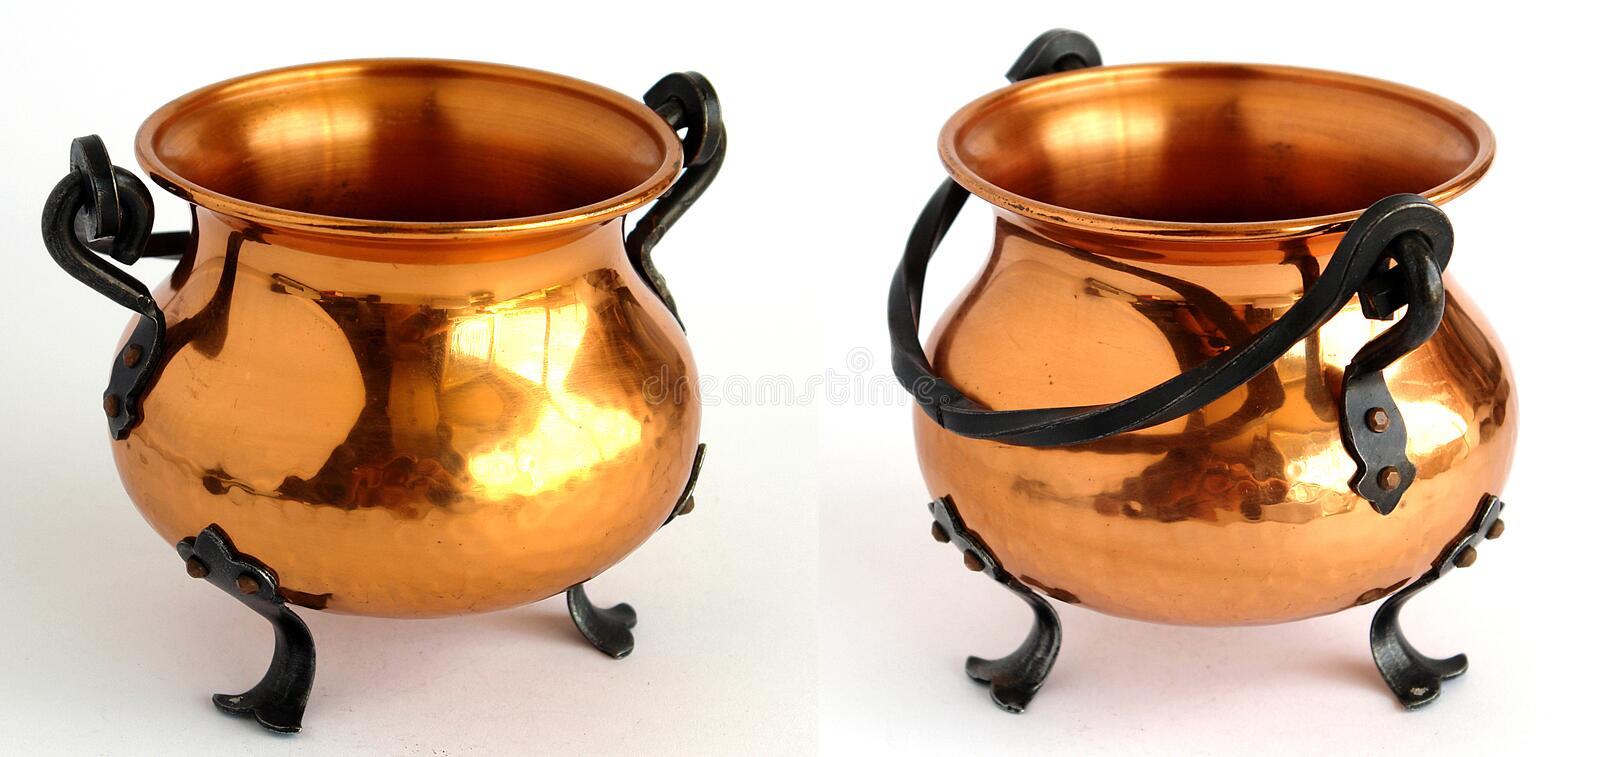 Copper cauldrons royalty free stock images